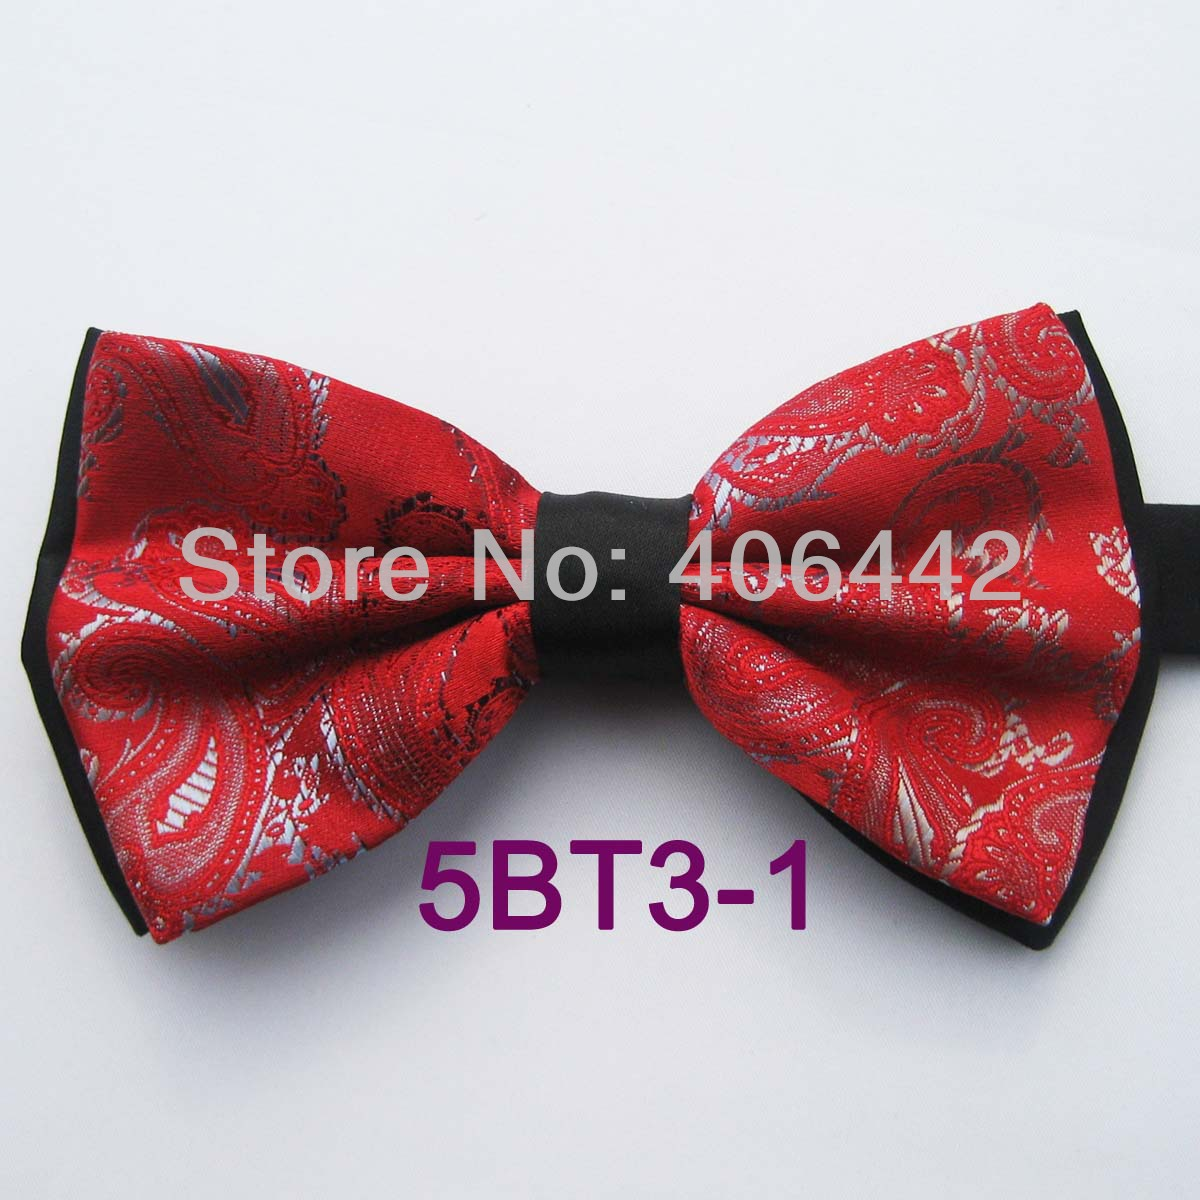 YIBEI Coachella Ties Double-deck Black Bottom Red Bow Ties With Gray  Paisley Butterflys Tuxedo Bowtie For Groom Wedding Dresses cba3c3a02ed0